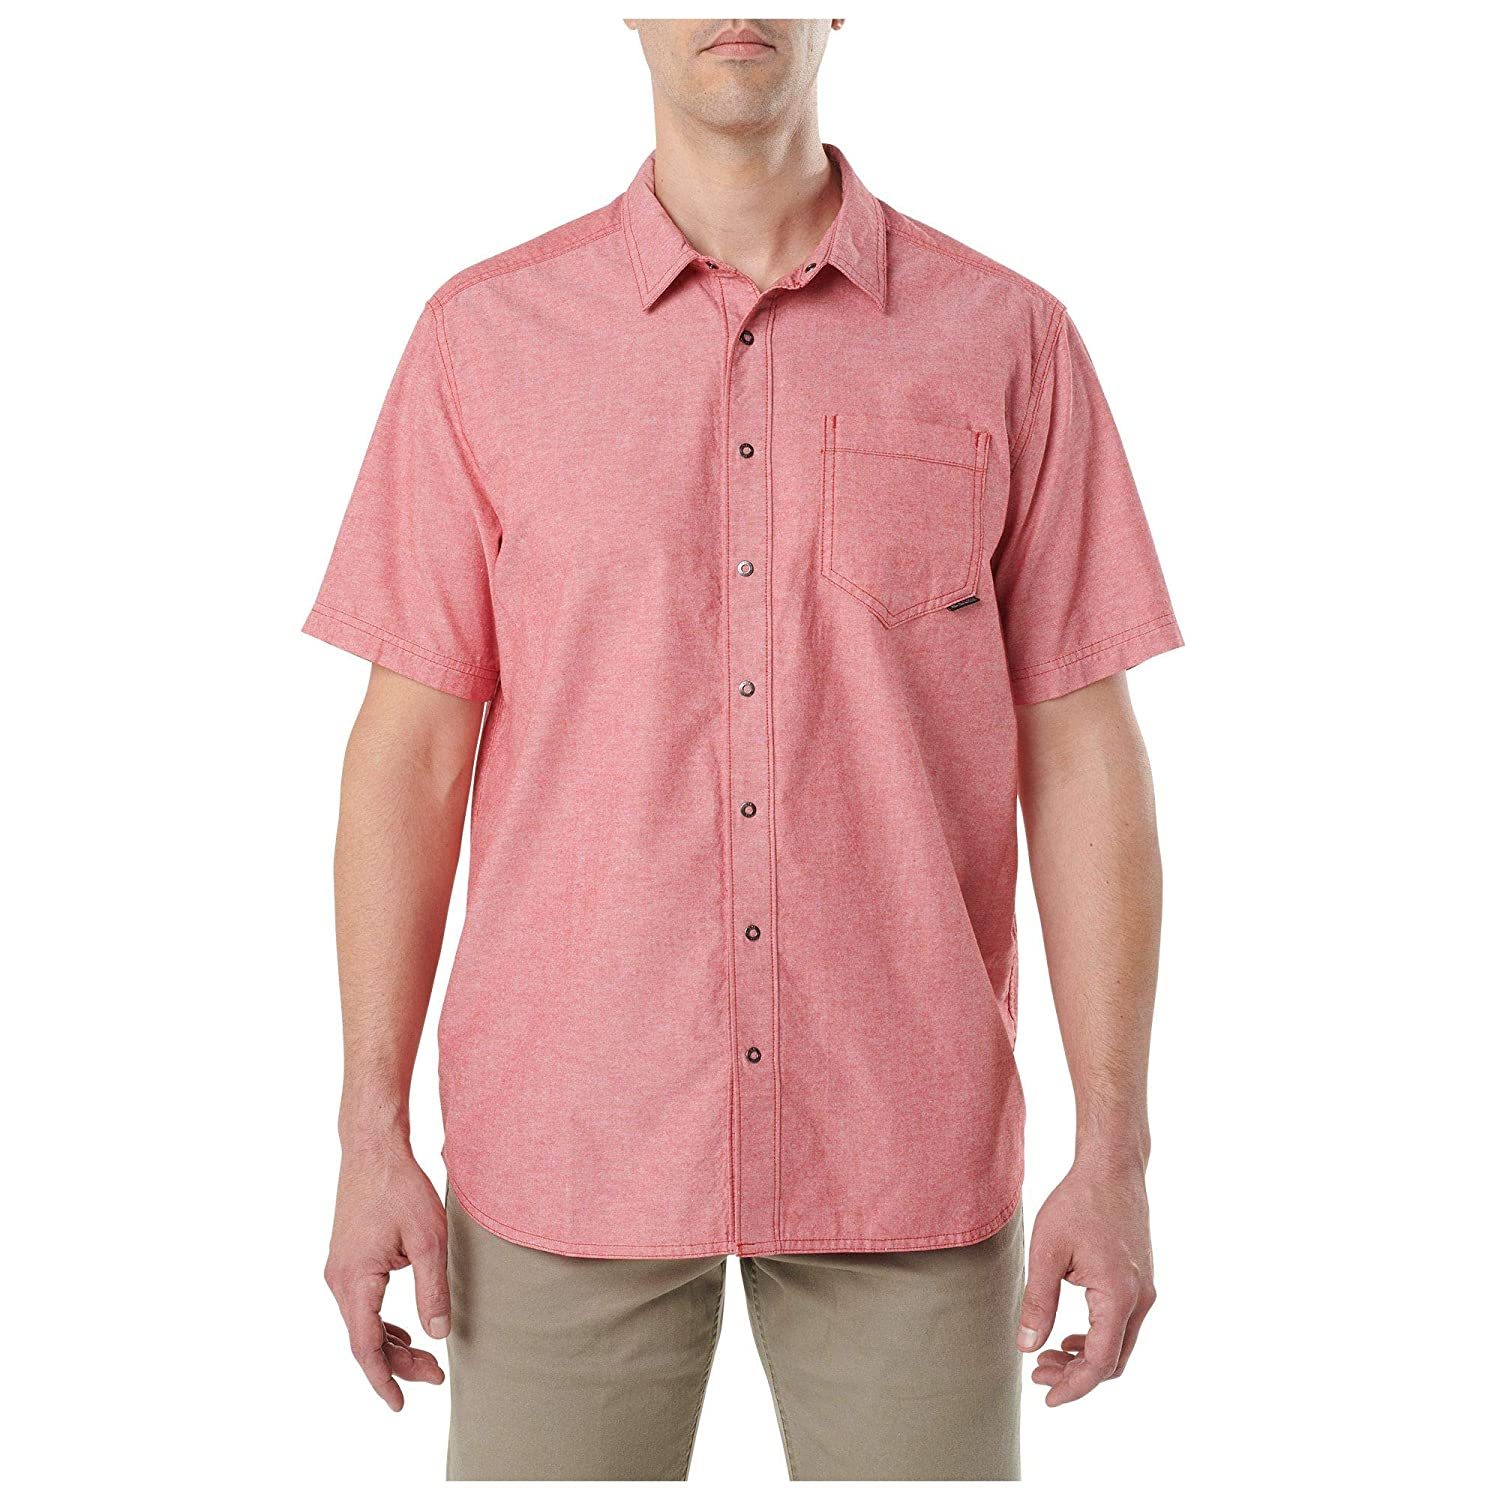 5.11 Tactical Mens Cotton Button-Down Ares Short Sleeve Button-Up Shirt,Style 71372